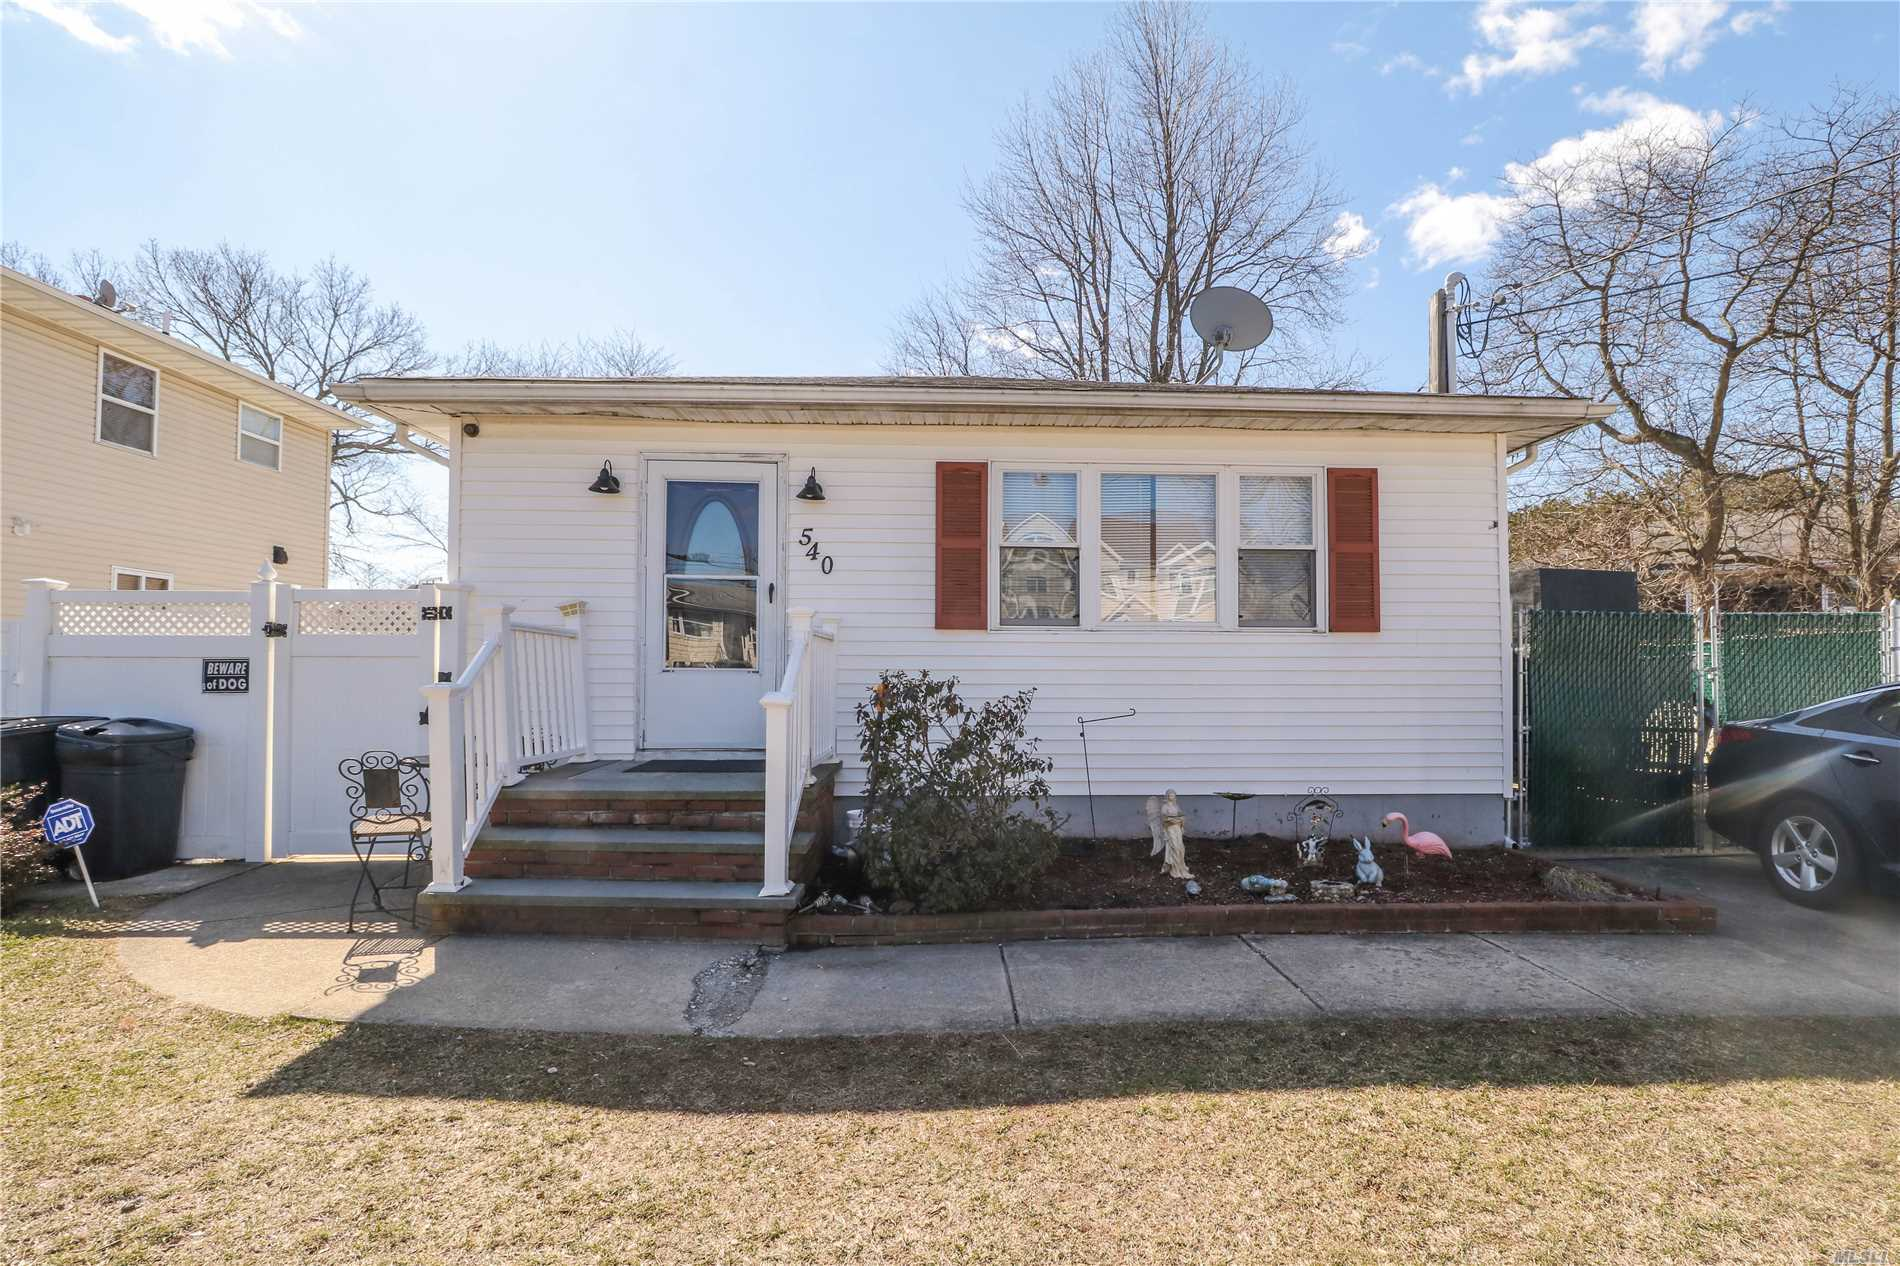 Well Maintained Ranch On A Dead End Street With Room For Mom, Full Finished Basement With Access To The Laundry, Full Bath And Living Area From Inside Then Separate Outside Entrance To Big Living Space On The Other Side Of The Basement With Another Full Bath, Bedroom, Living Room And Kitchen. Perfect For Extended Family! Priced To Sell!